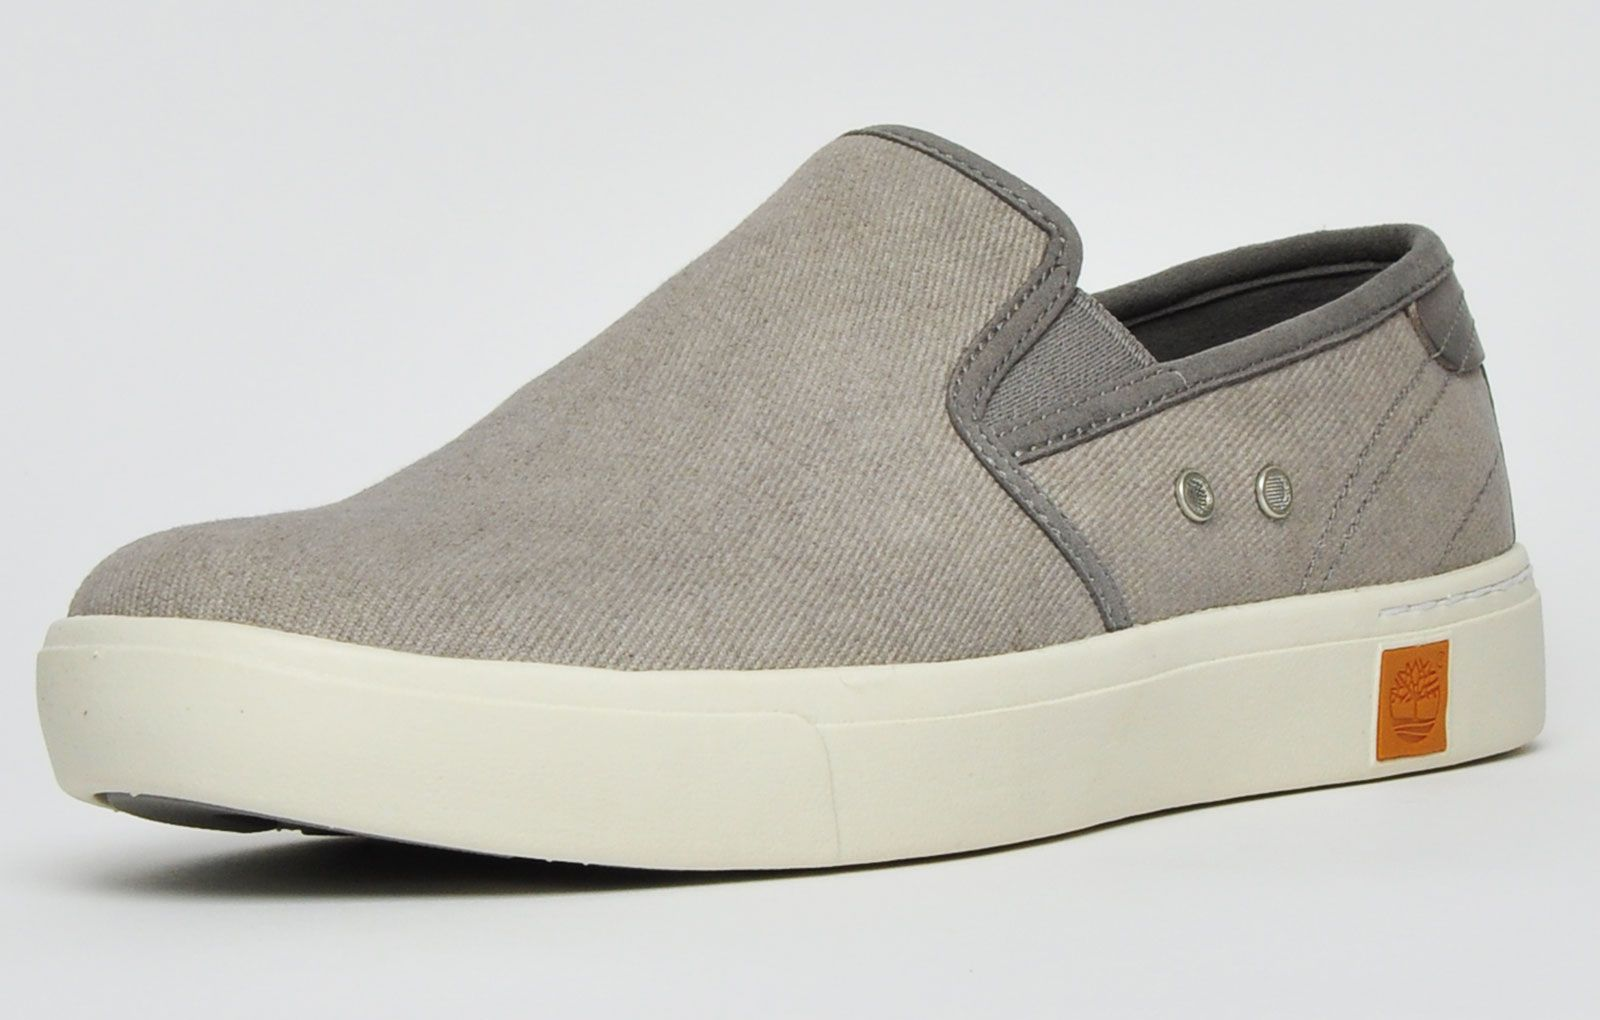 Timberland Amherst Double Gore Slip On Mens